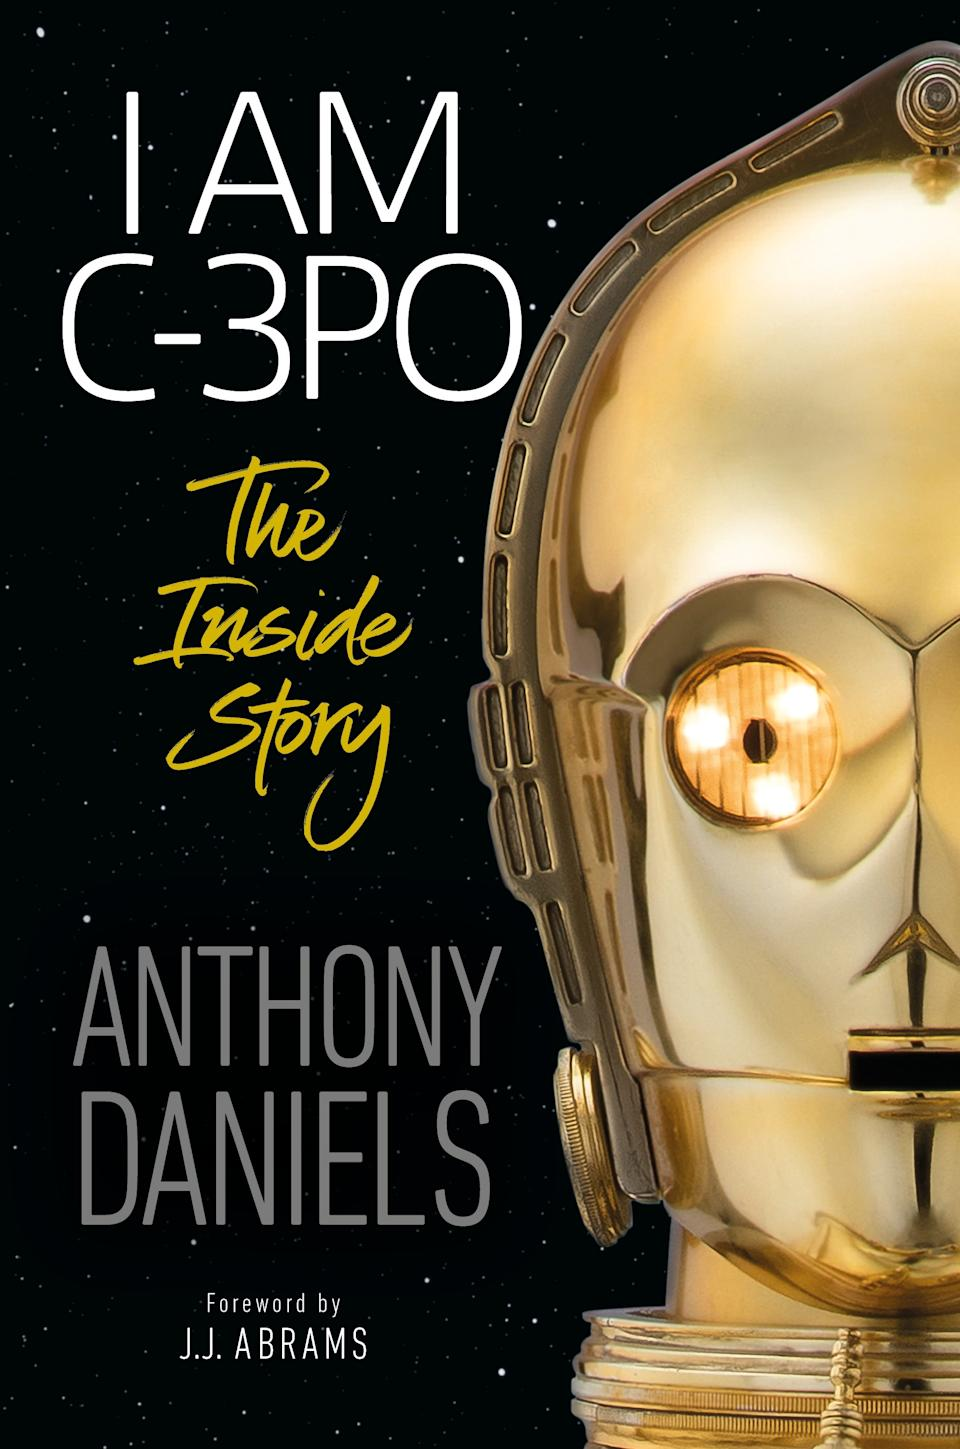 I Am C-3PO: The Inside Story by Anthony Daniels (DK)